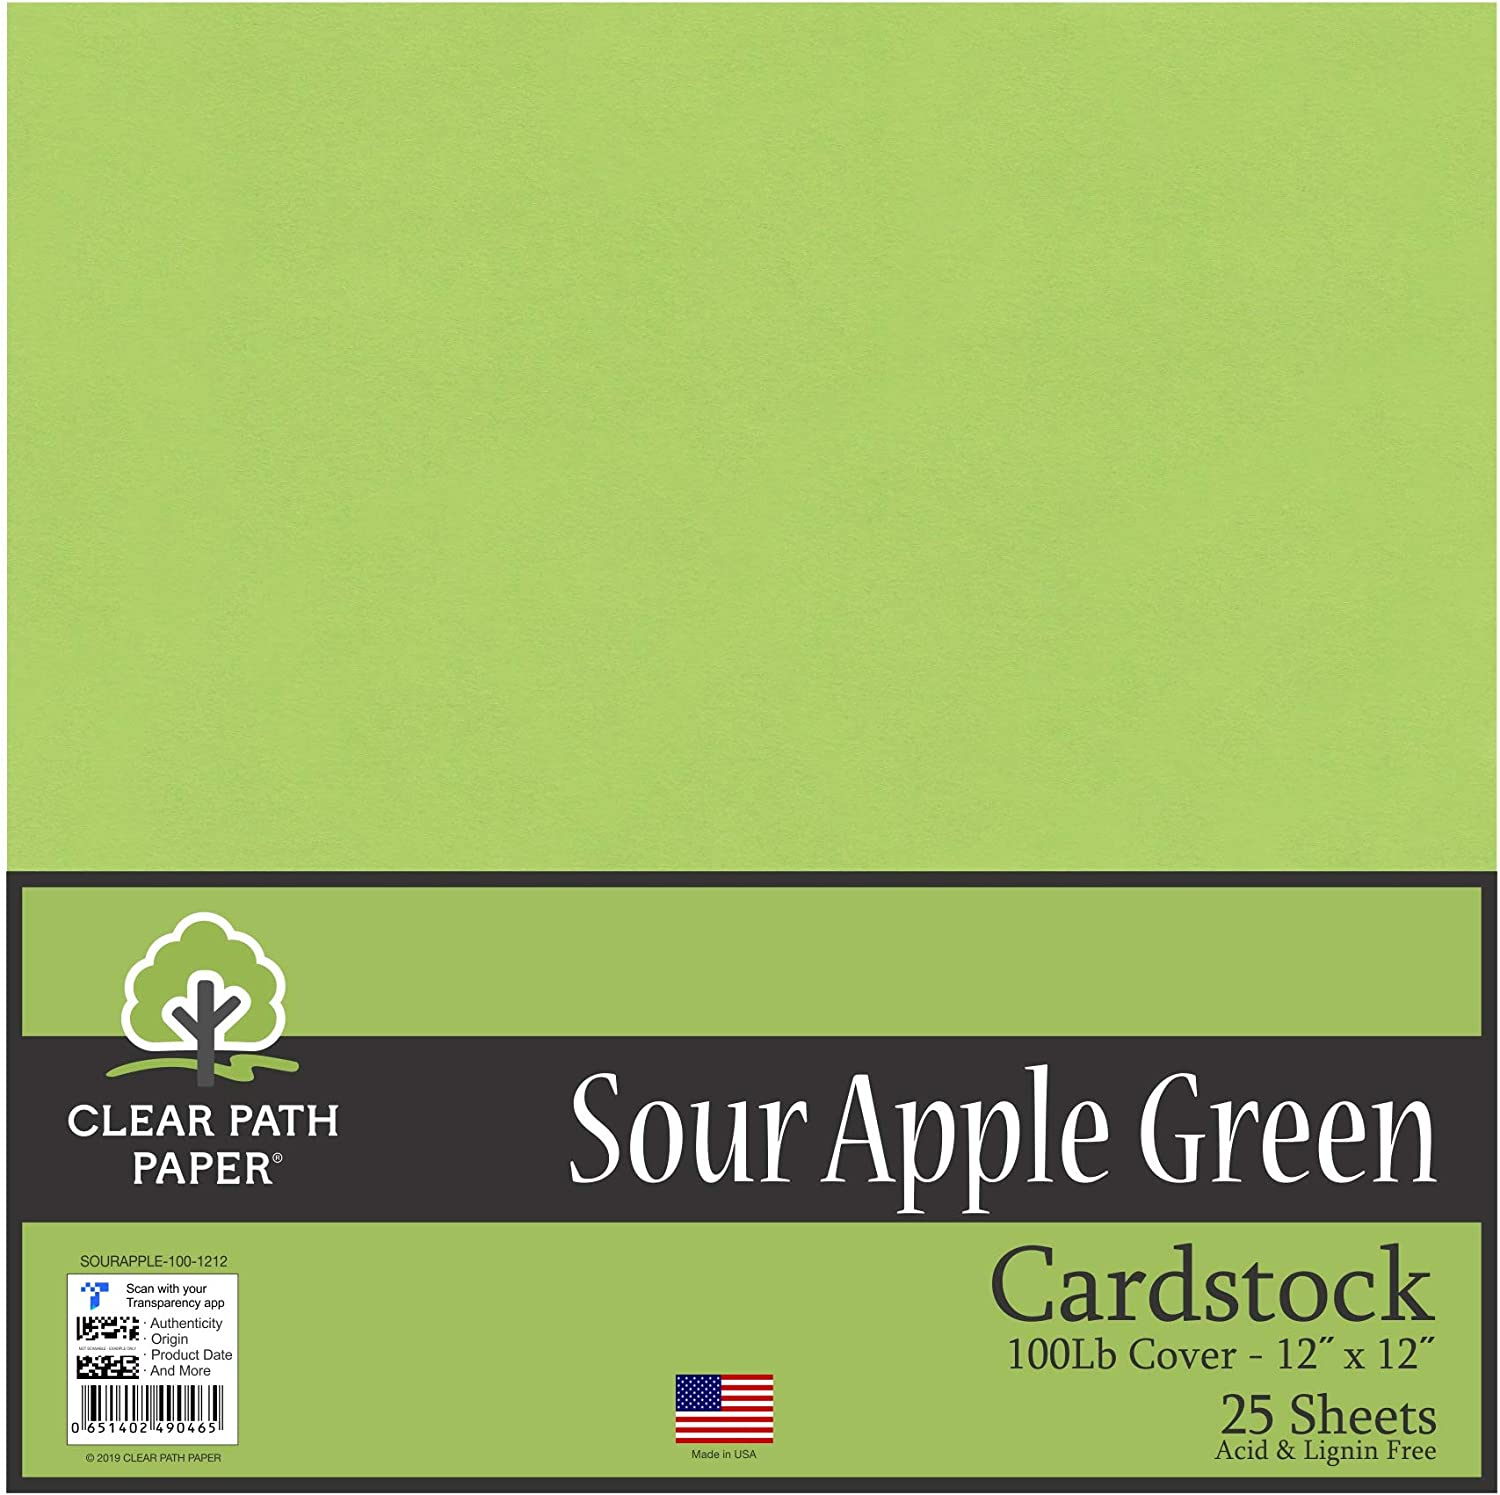 Sour Apple Green Cardstock - 12 x 12 inch - 100Lb Cover - 25 Sheets - Clear Path Paper